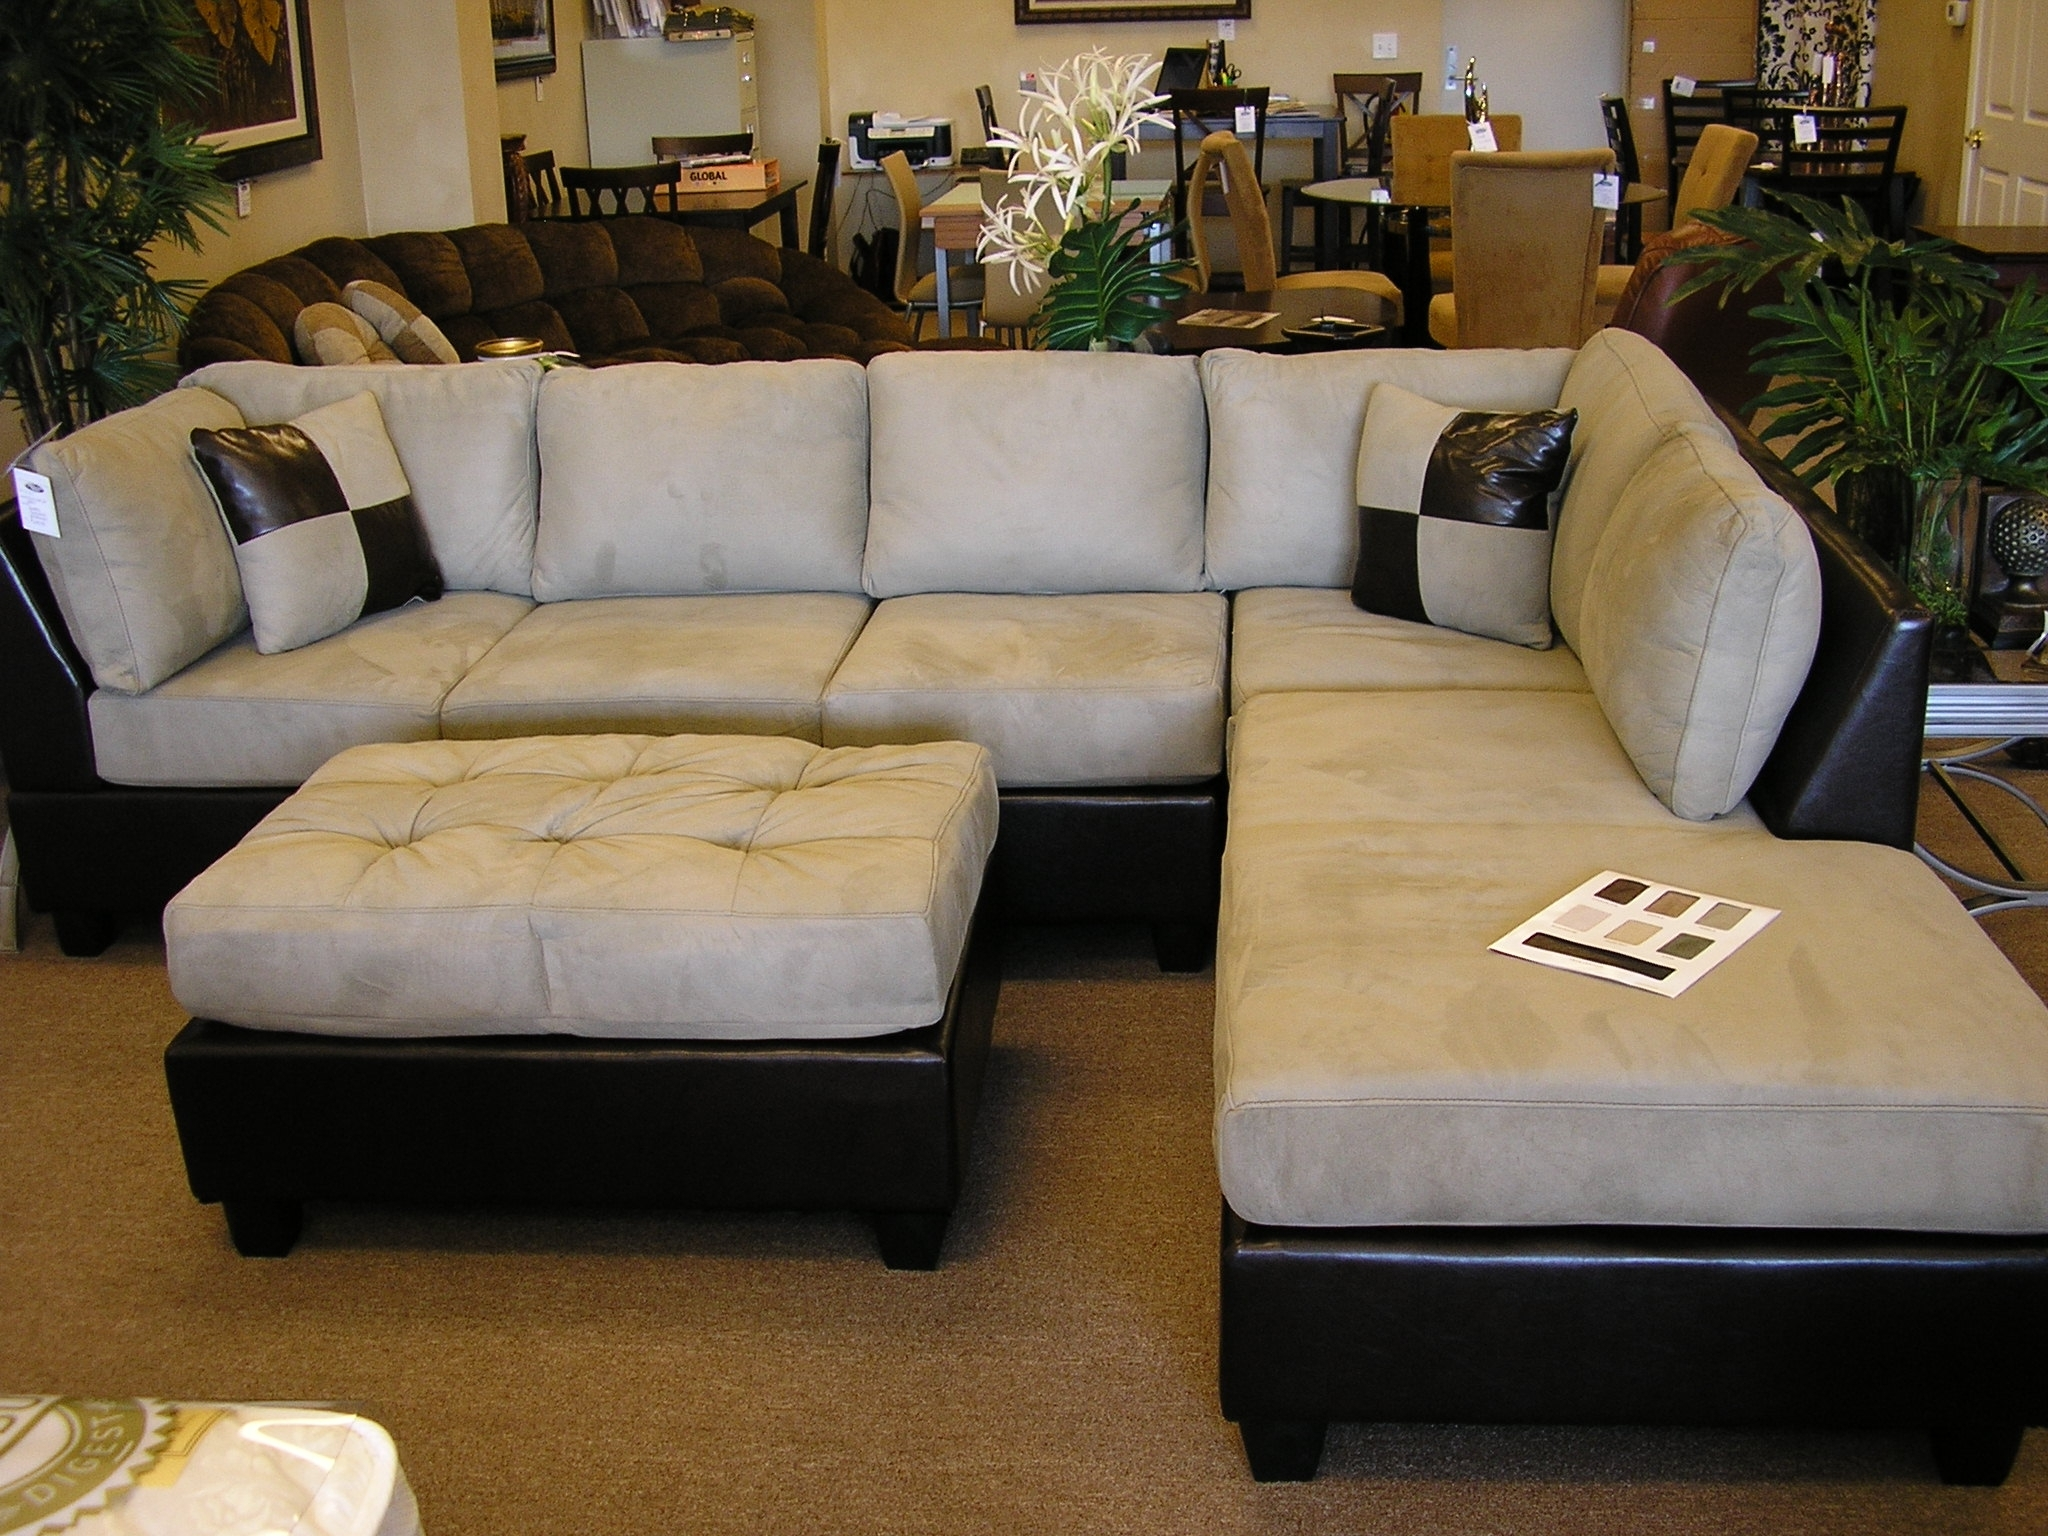 Uncategorized : Sectional Ottoman Set Ideas For Lovely Sofa 3 Regarding Leather Sectionals With Chaise And Ottoman (Photo 10 of 10)